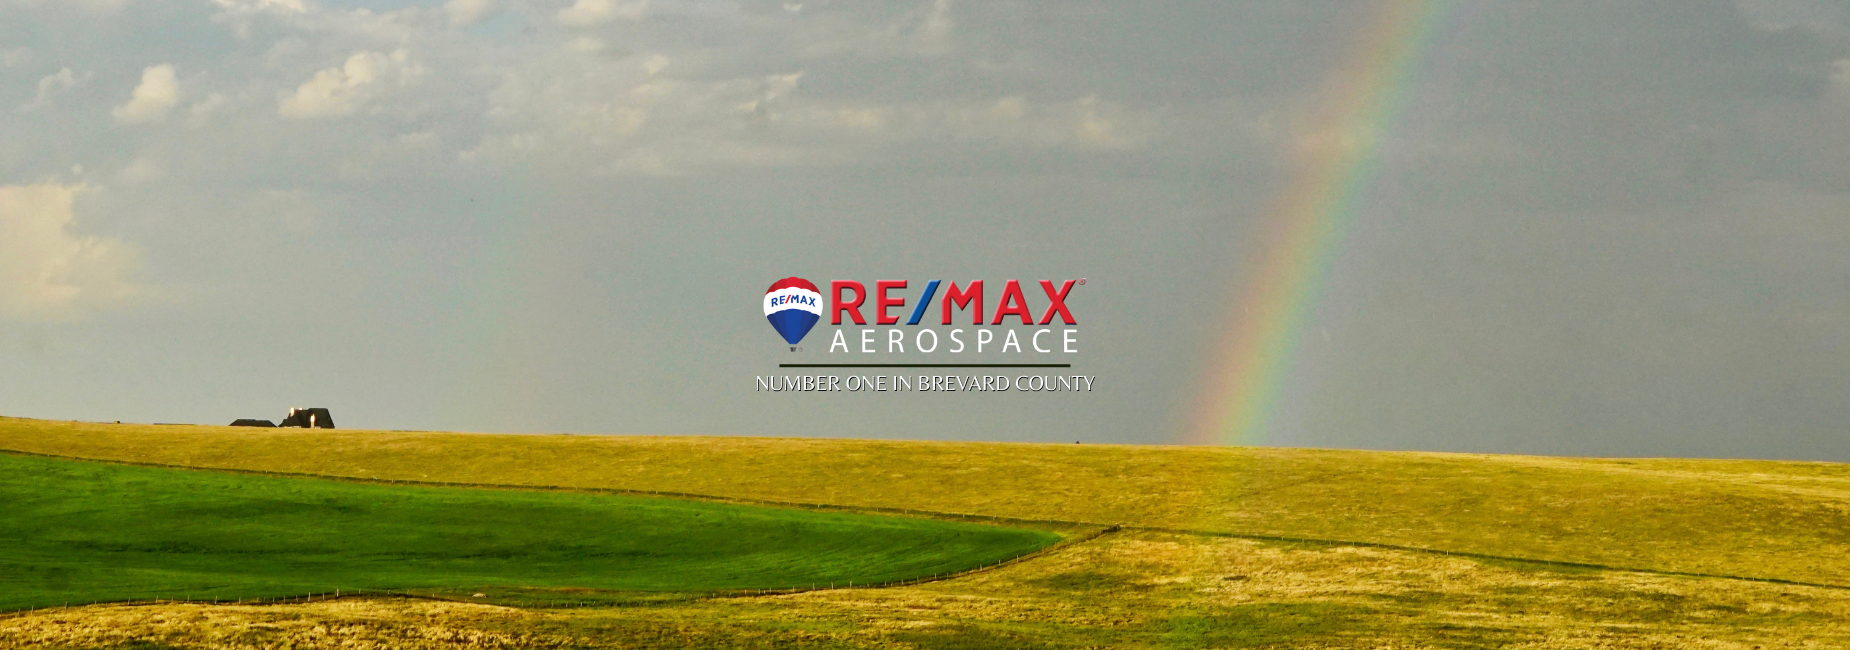 Rainbow - Remax Aerospace Number one in brevard county - farm land image